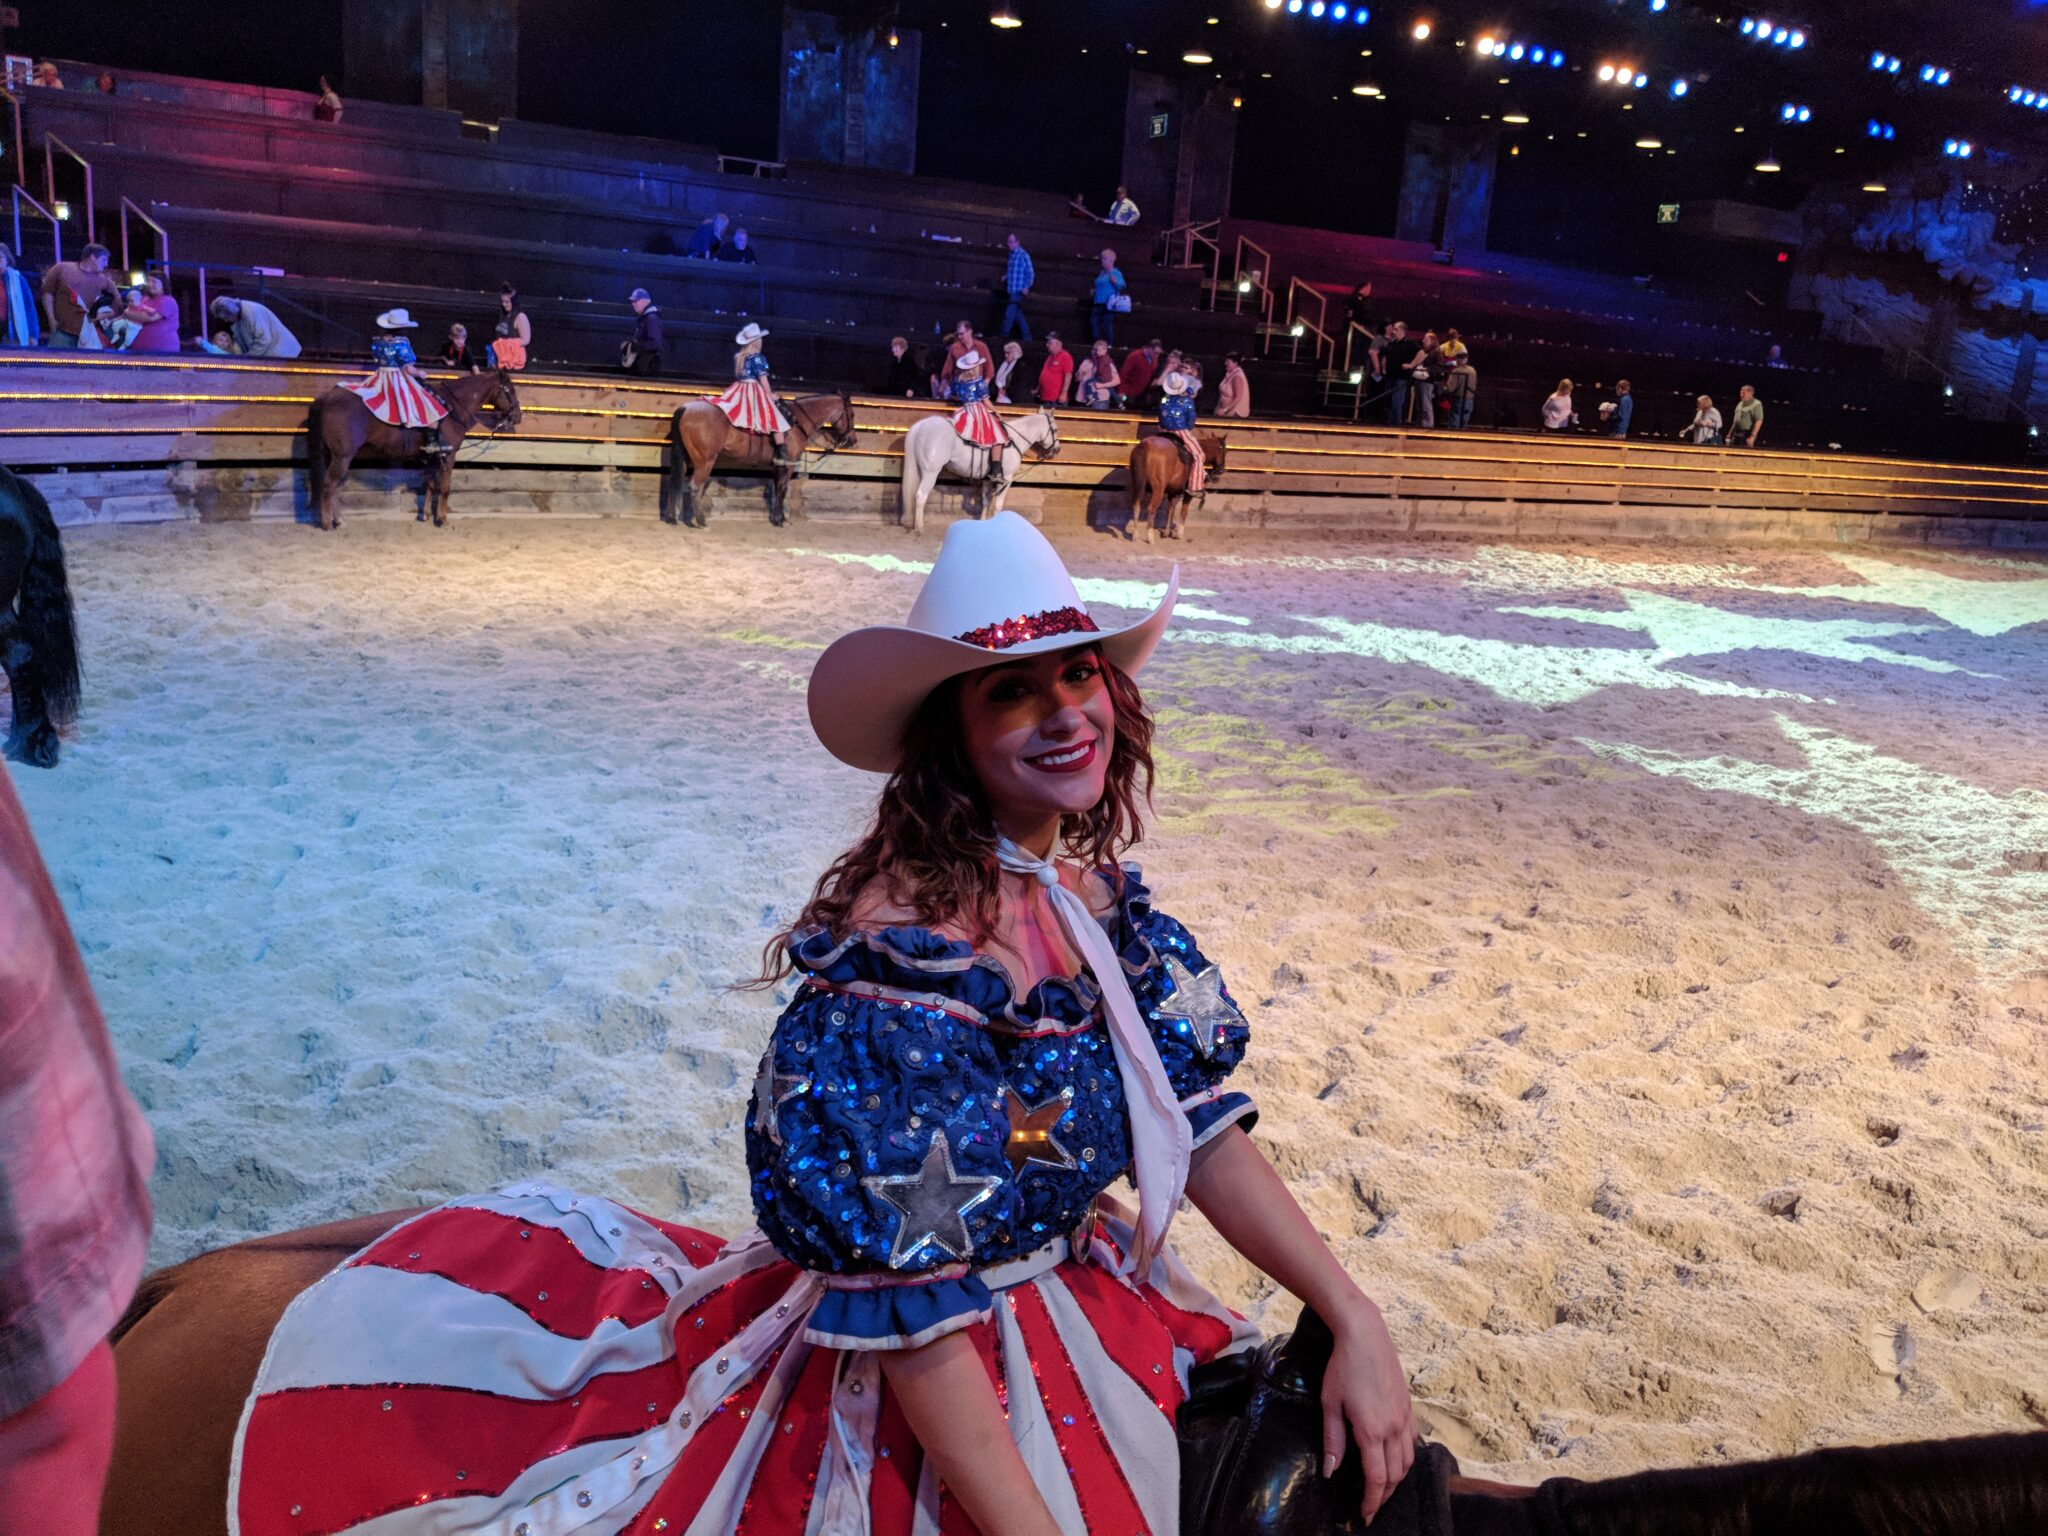 Family fun for all at Dolly Parton's Stampede in Branson.